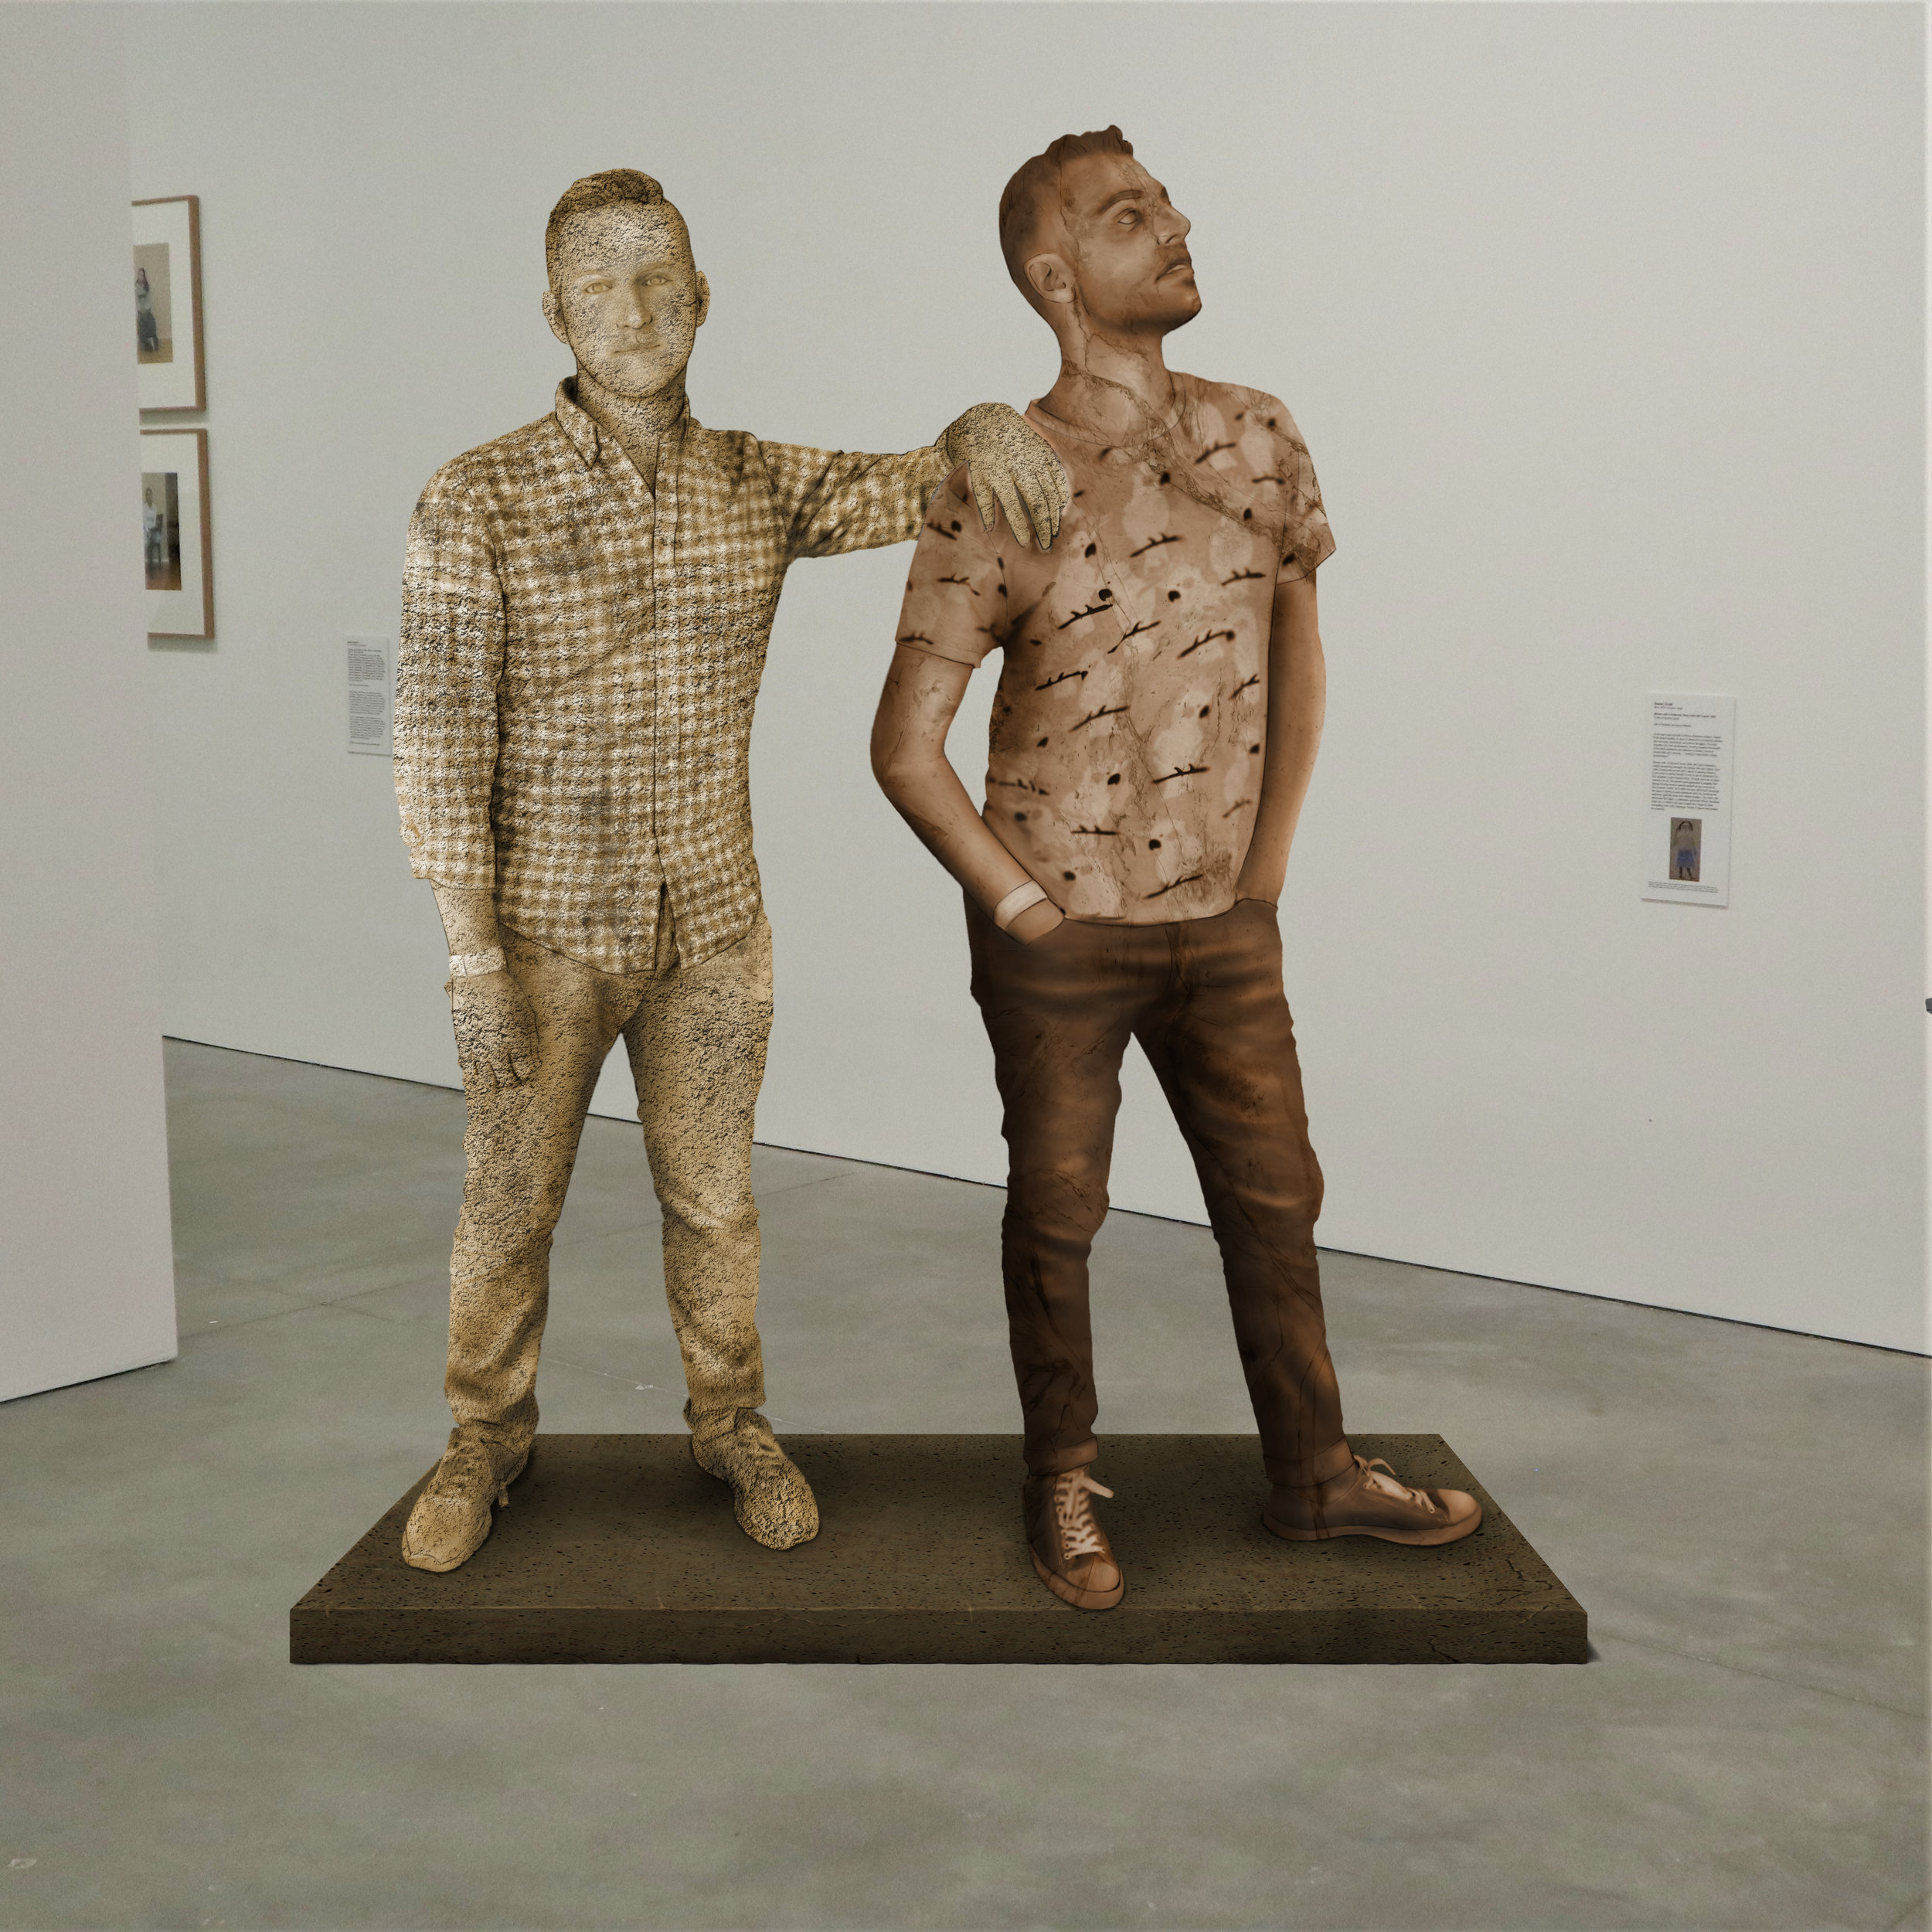 """CLAIRE'S LITTER BOX (MEOW),"" granite and quartzite, Institute of Contemporary Art, Boston   2018  JPG  During an installation at the Institute of Contemporary Art in Boston, viewers were invited to imagine themselves as statues in the ICA's permanent collection. Participants were photographed posing as a statue they felt represented themselves, created a name for their fictional statue, and selected a stone from which their statue would be made. Professional and amateur digital artists were commissioned to create renderings of the statues, which were superimposed on photos of the ICA's permanent collection gallery space."